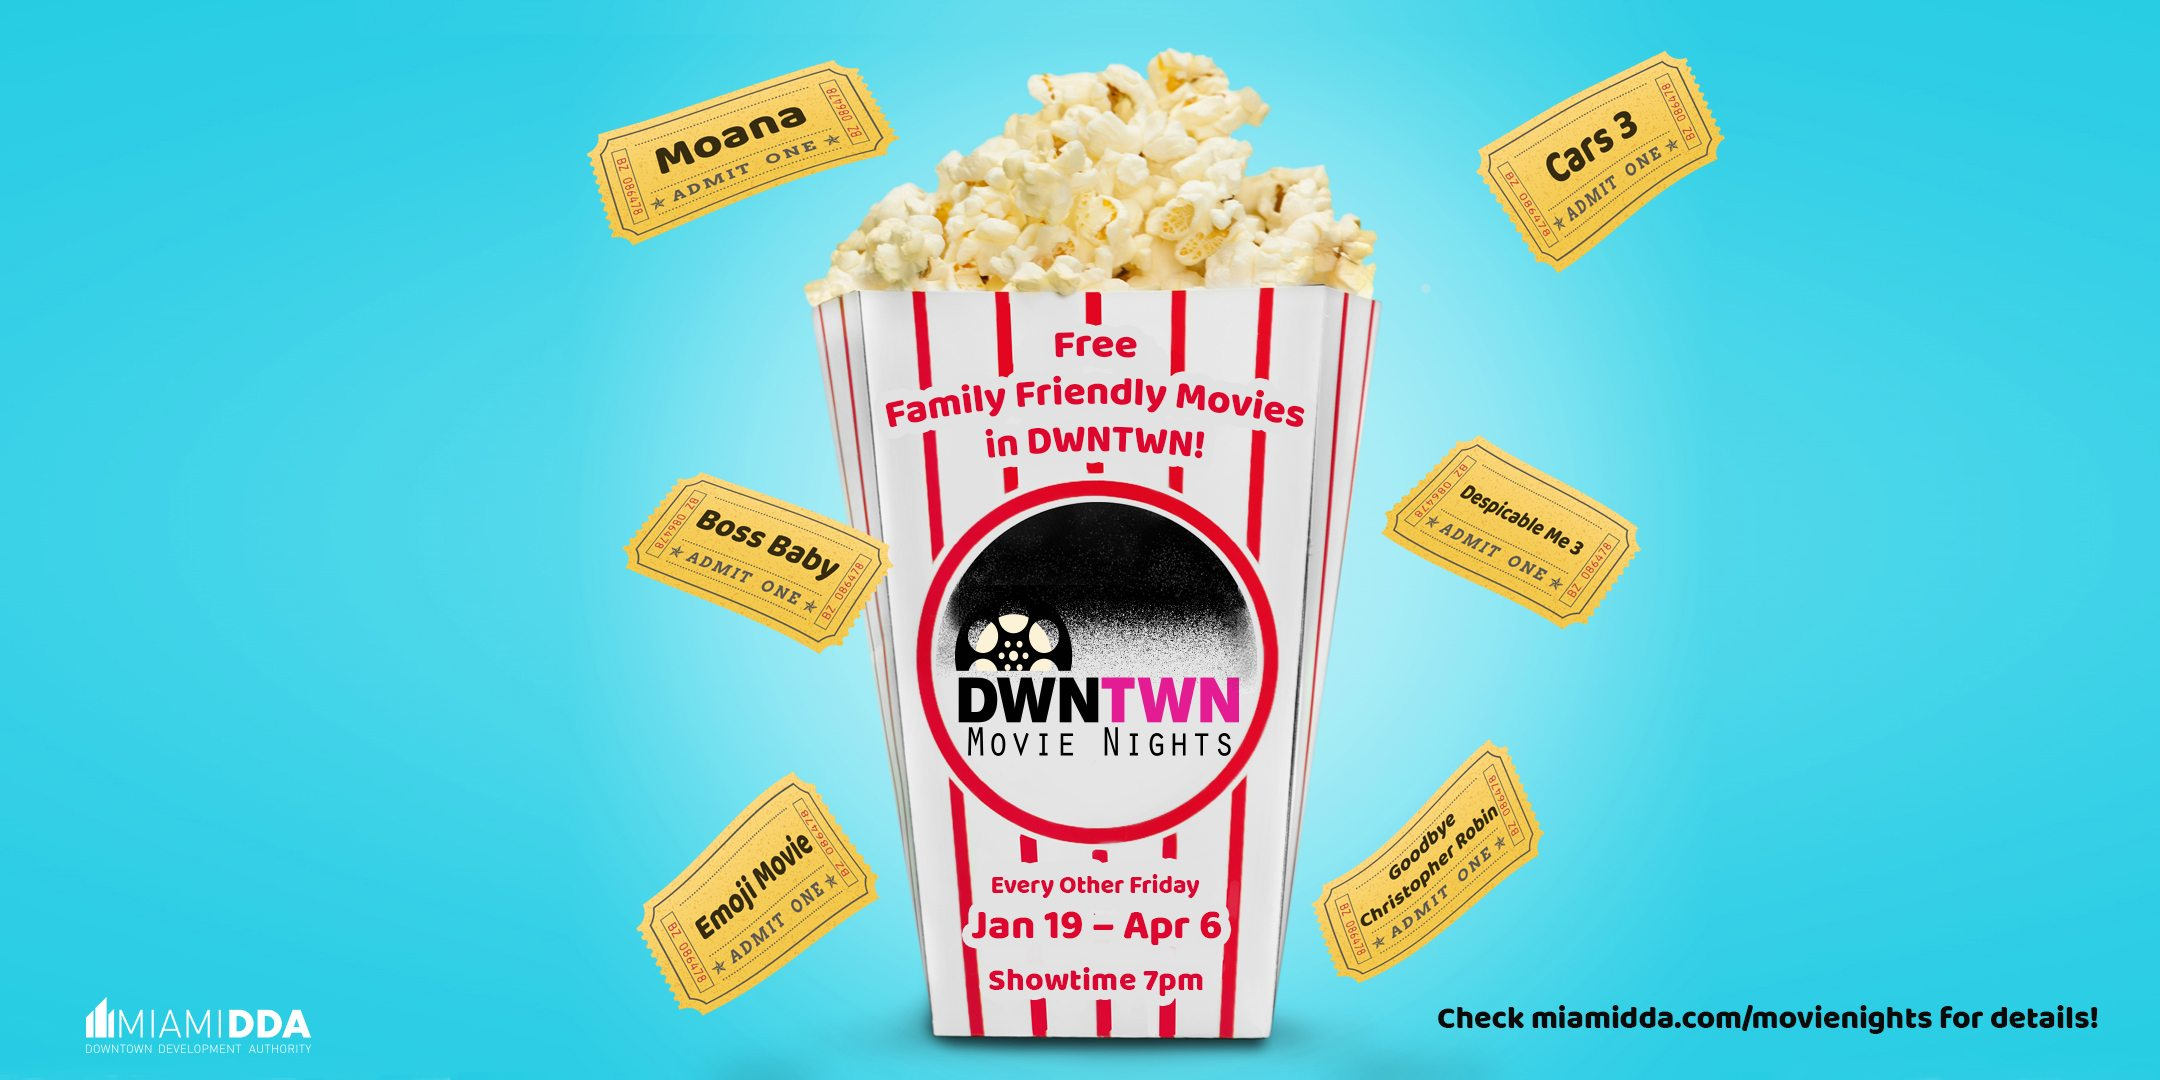 DWNTWN Movie Nights by Miami DDA